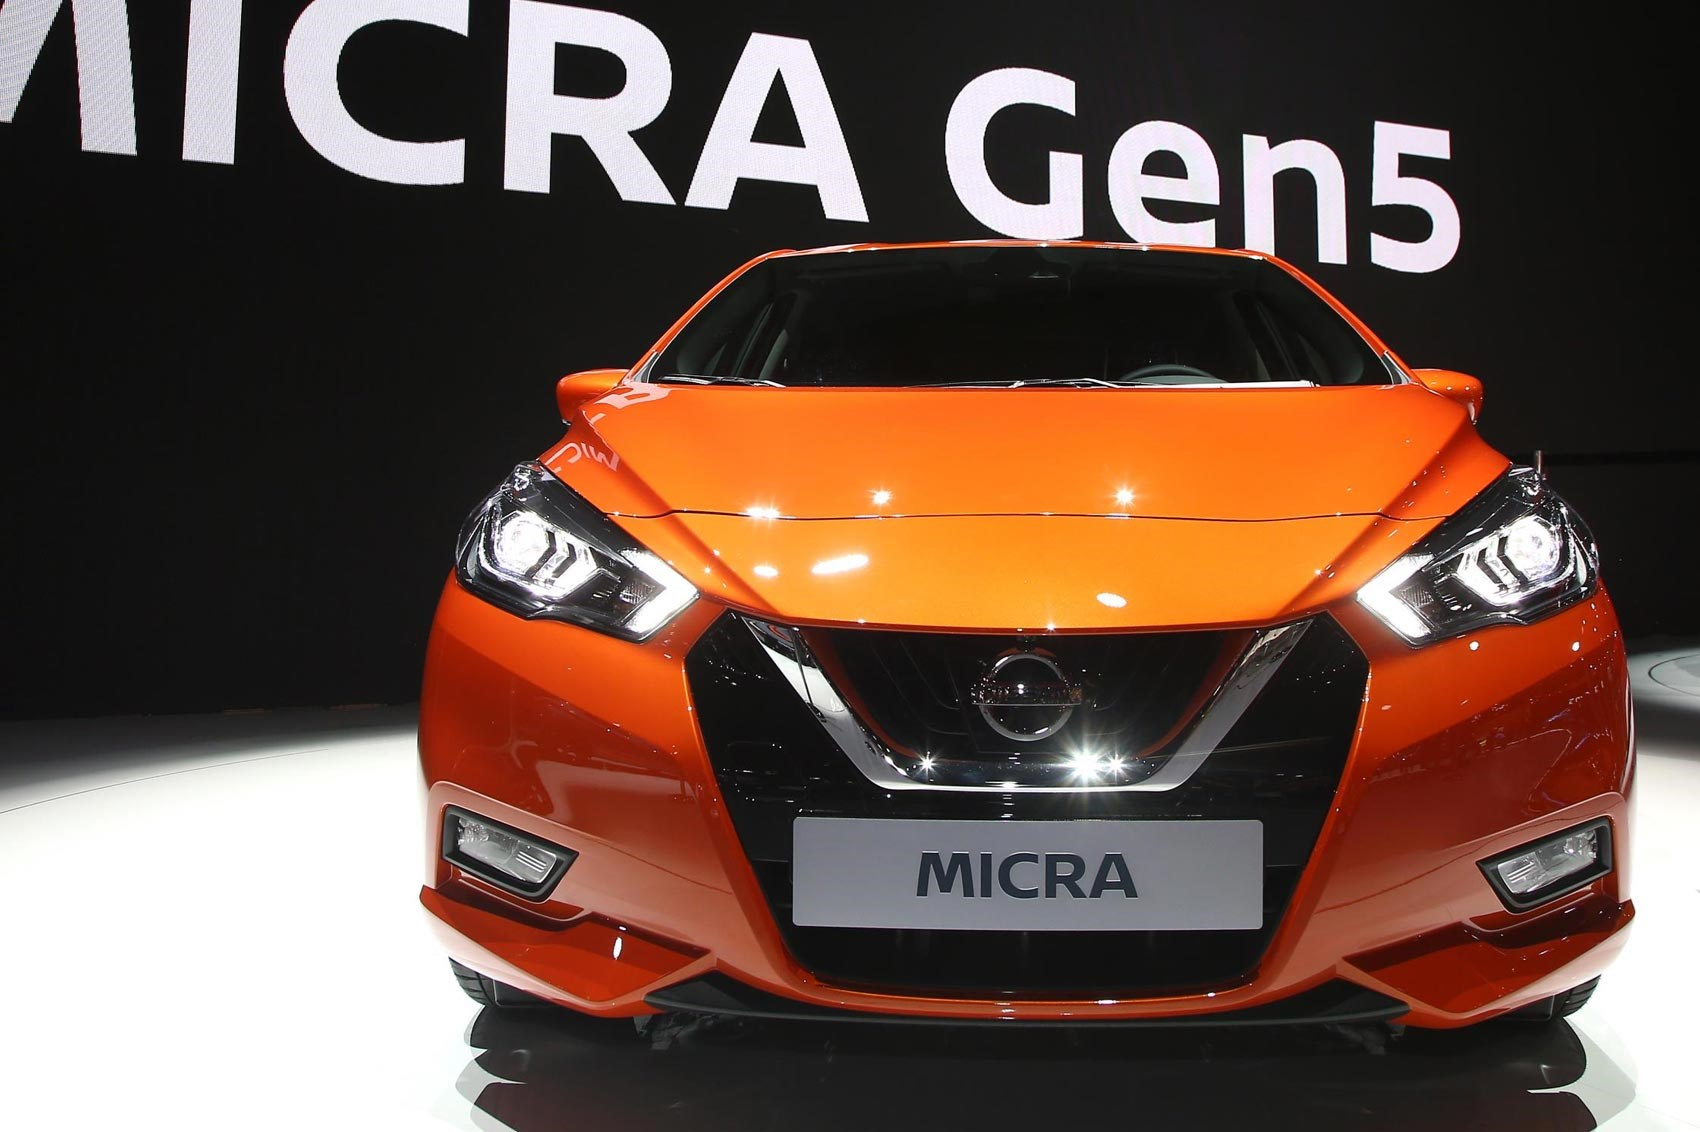 New 2017 Nissan Micra priced from £11,995 in UK